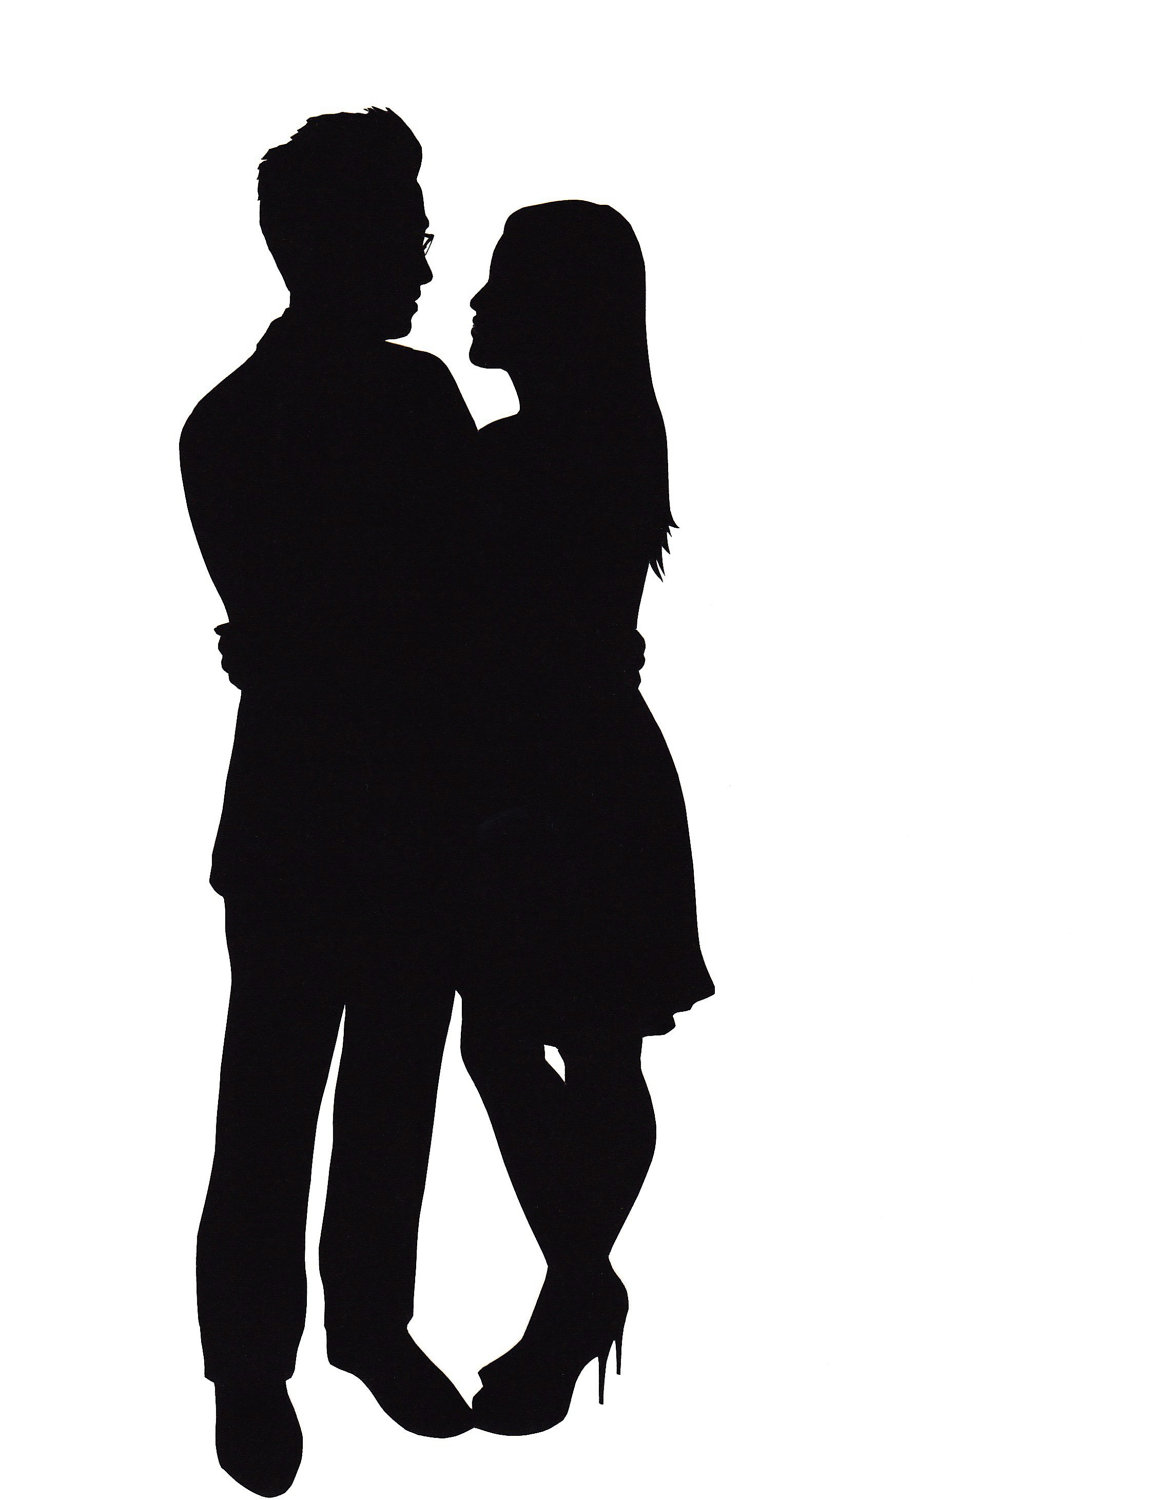 1171x1500 Silhouette Of A Couple Hugging